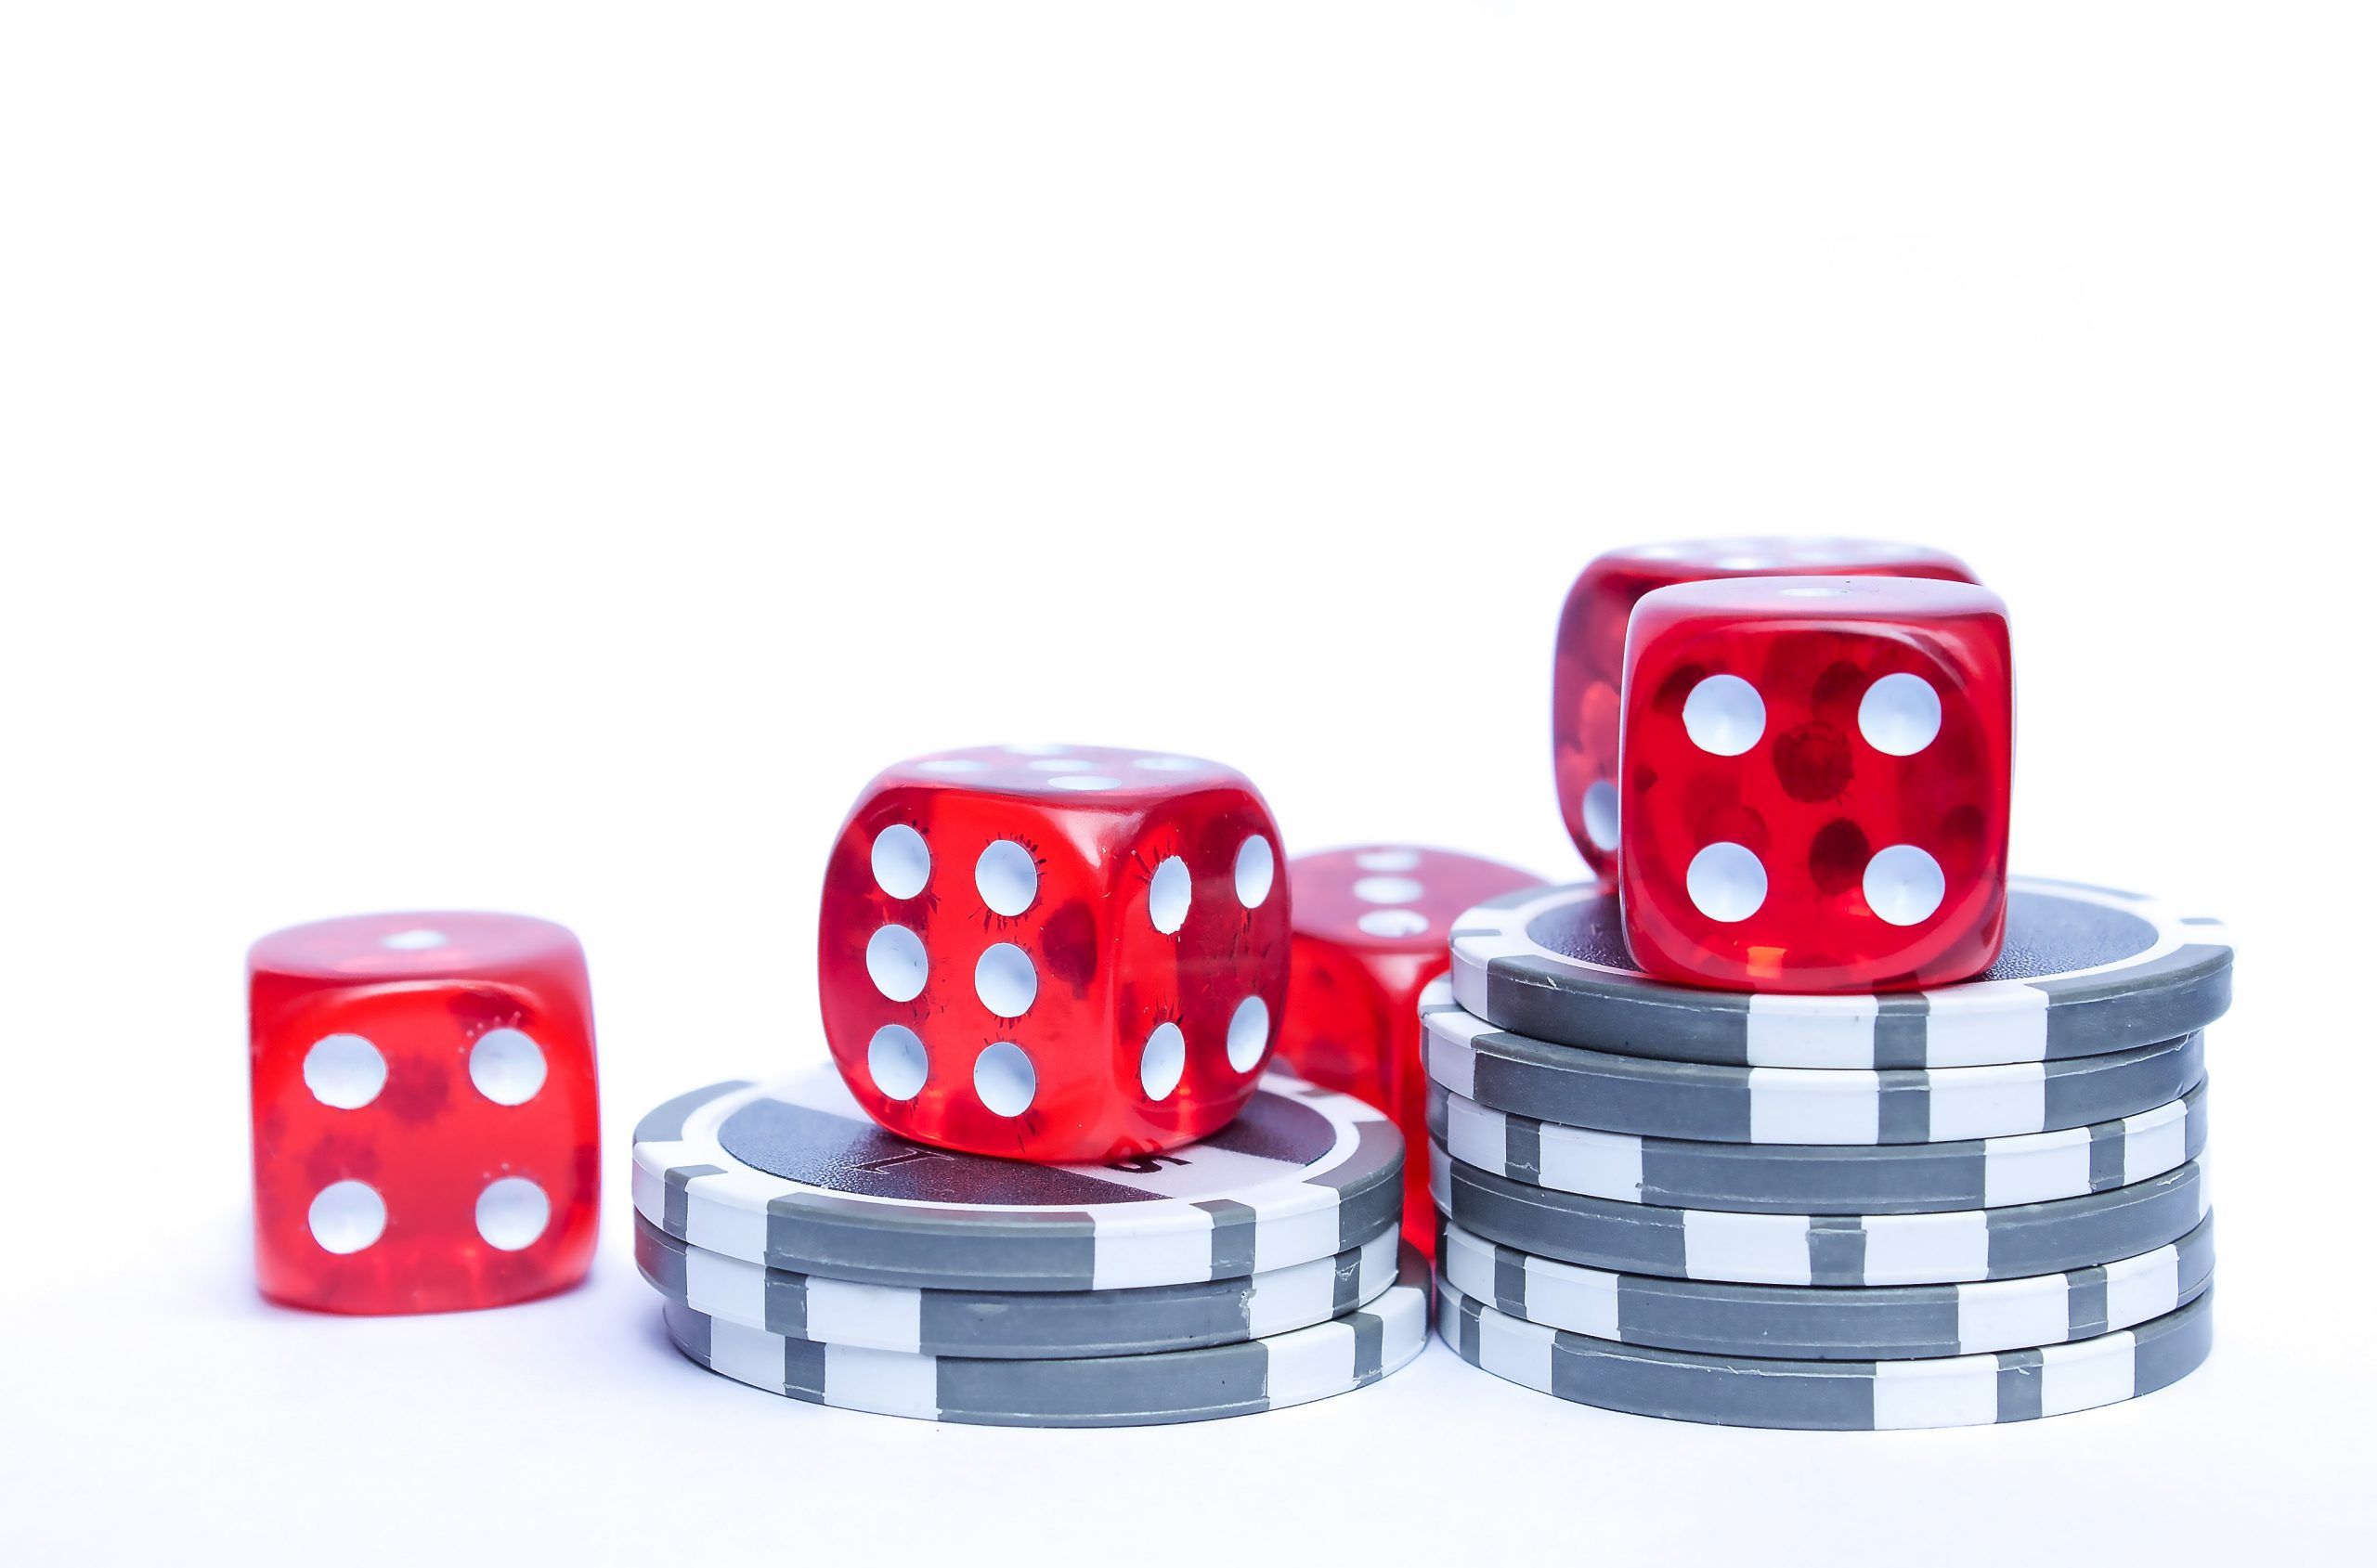 9 Questions You could Ask About Casino